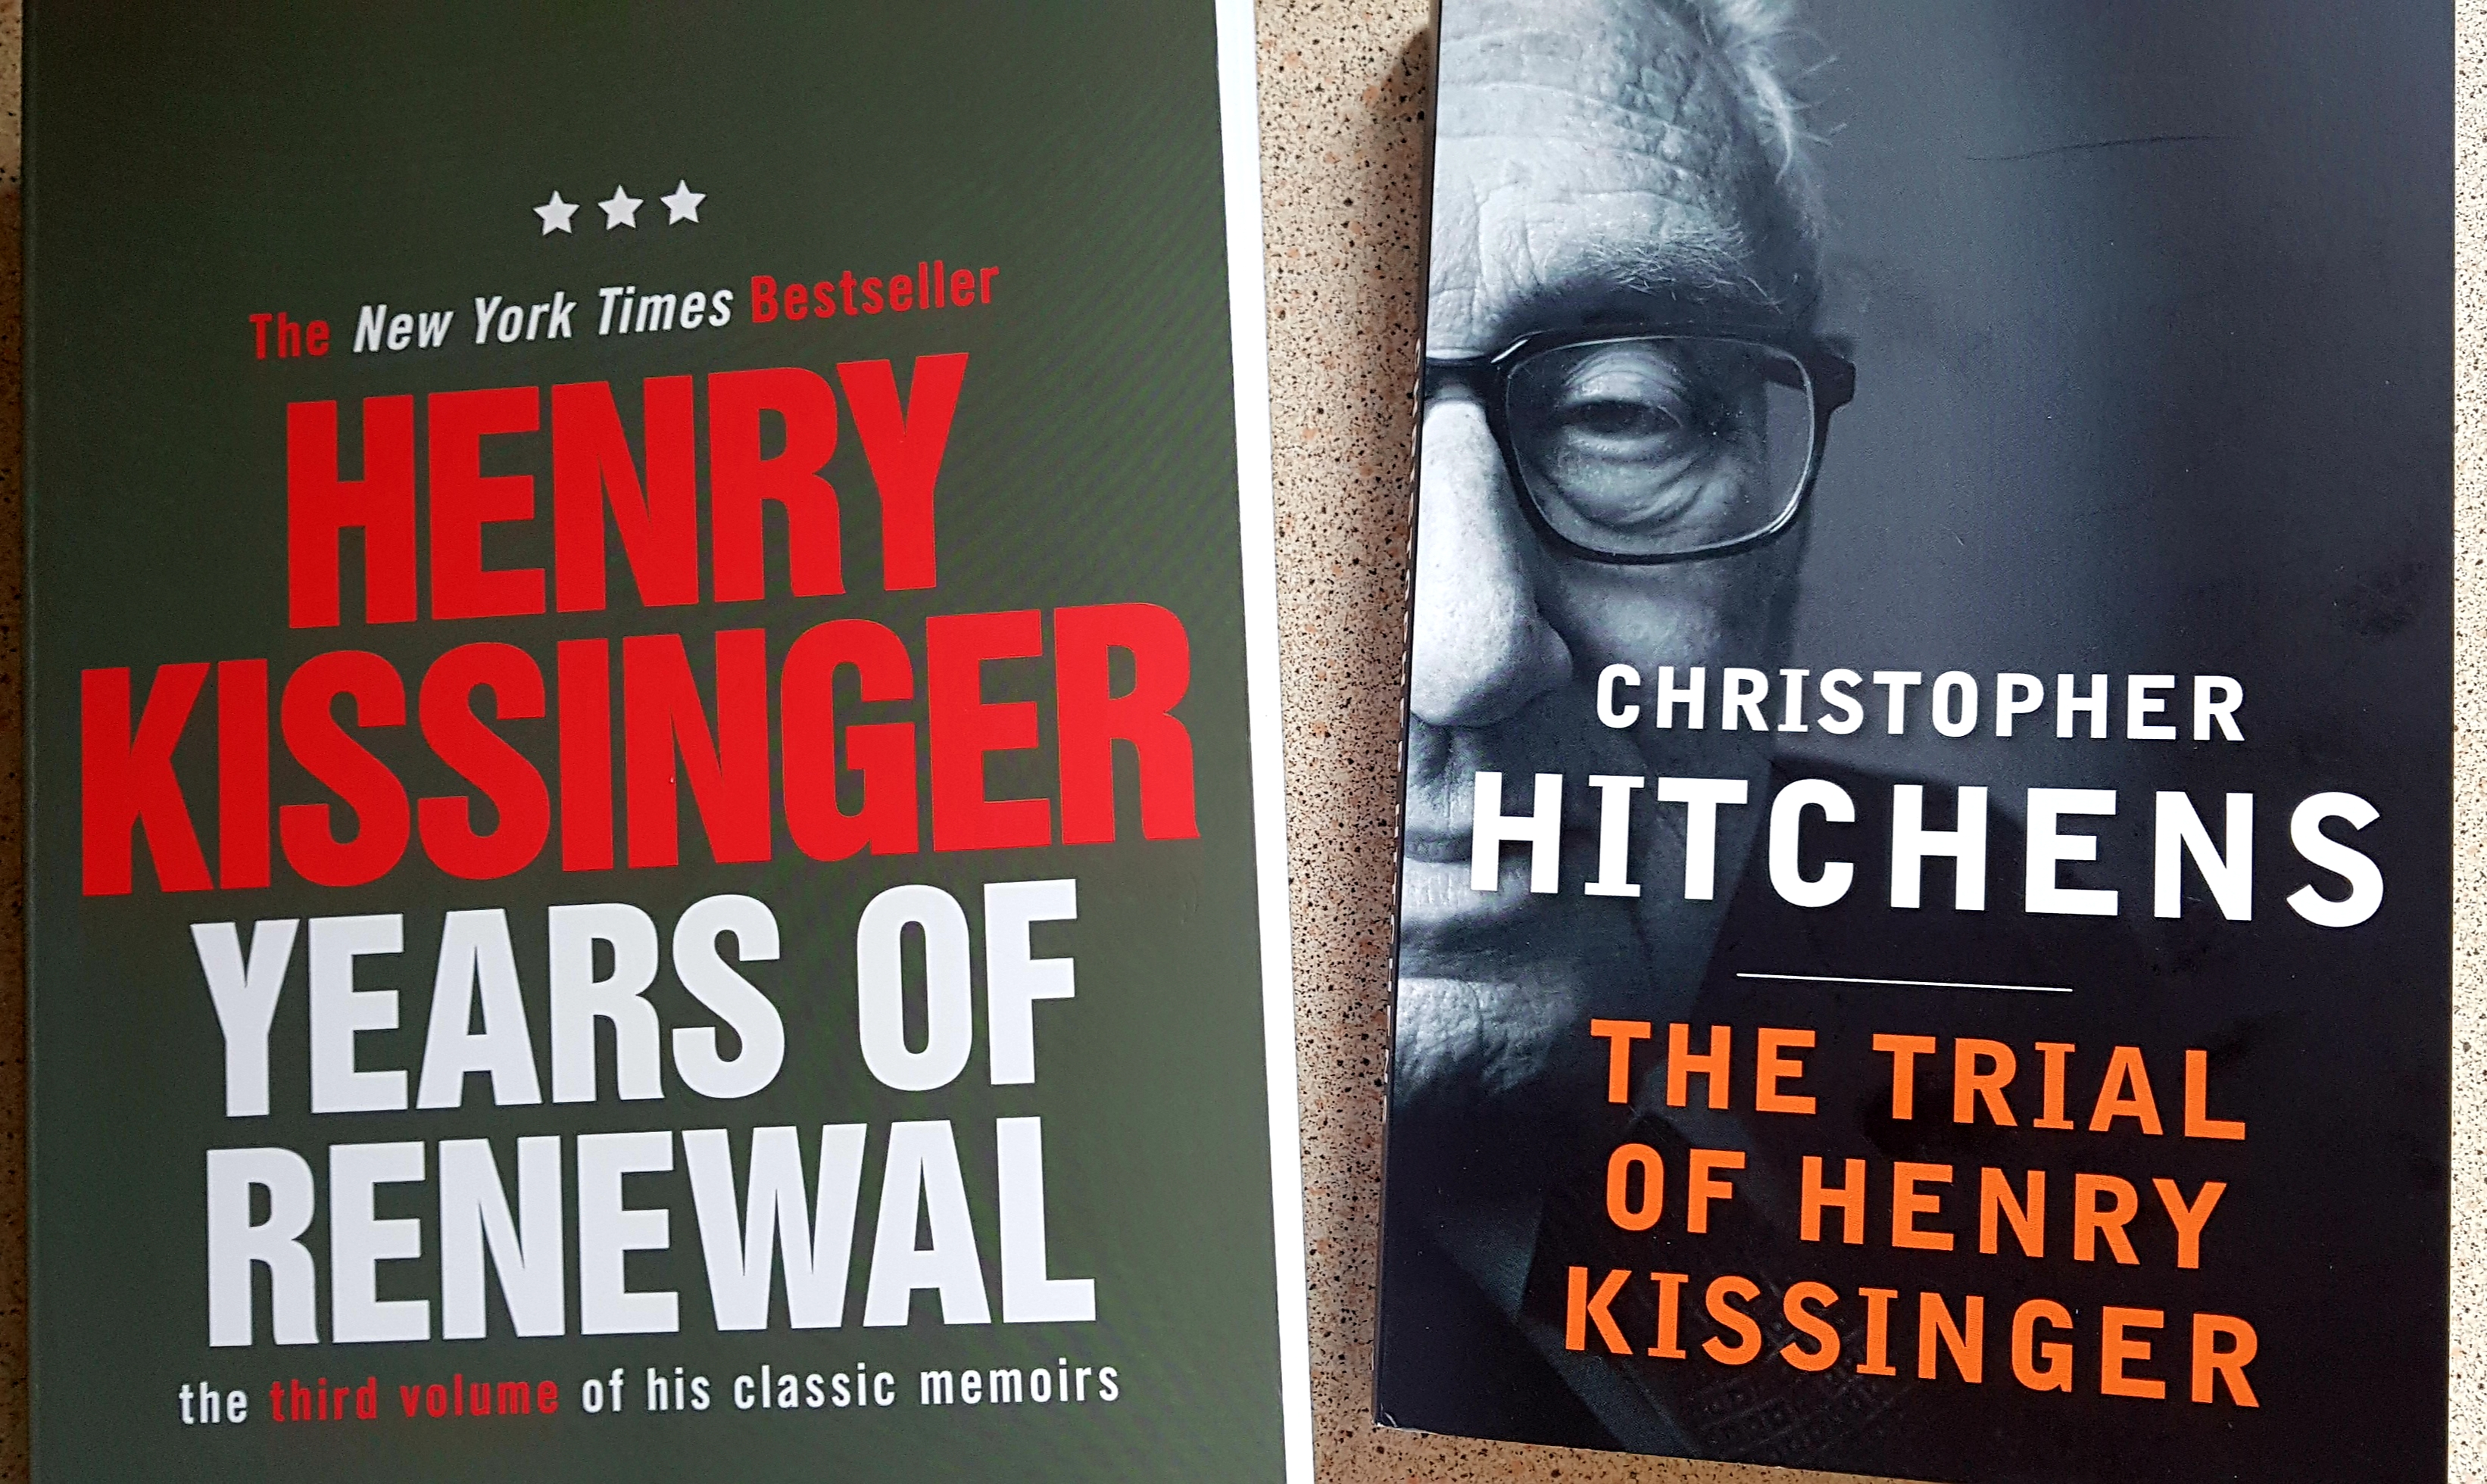 the trial of henry kissinger hitchens christopher